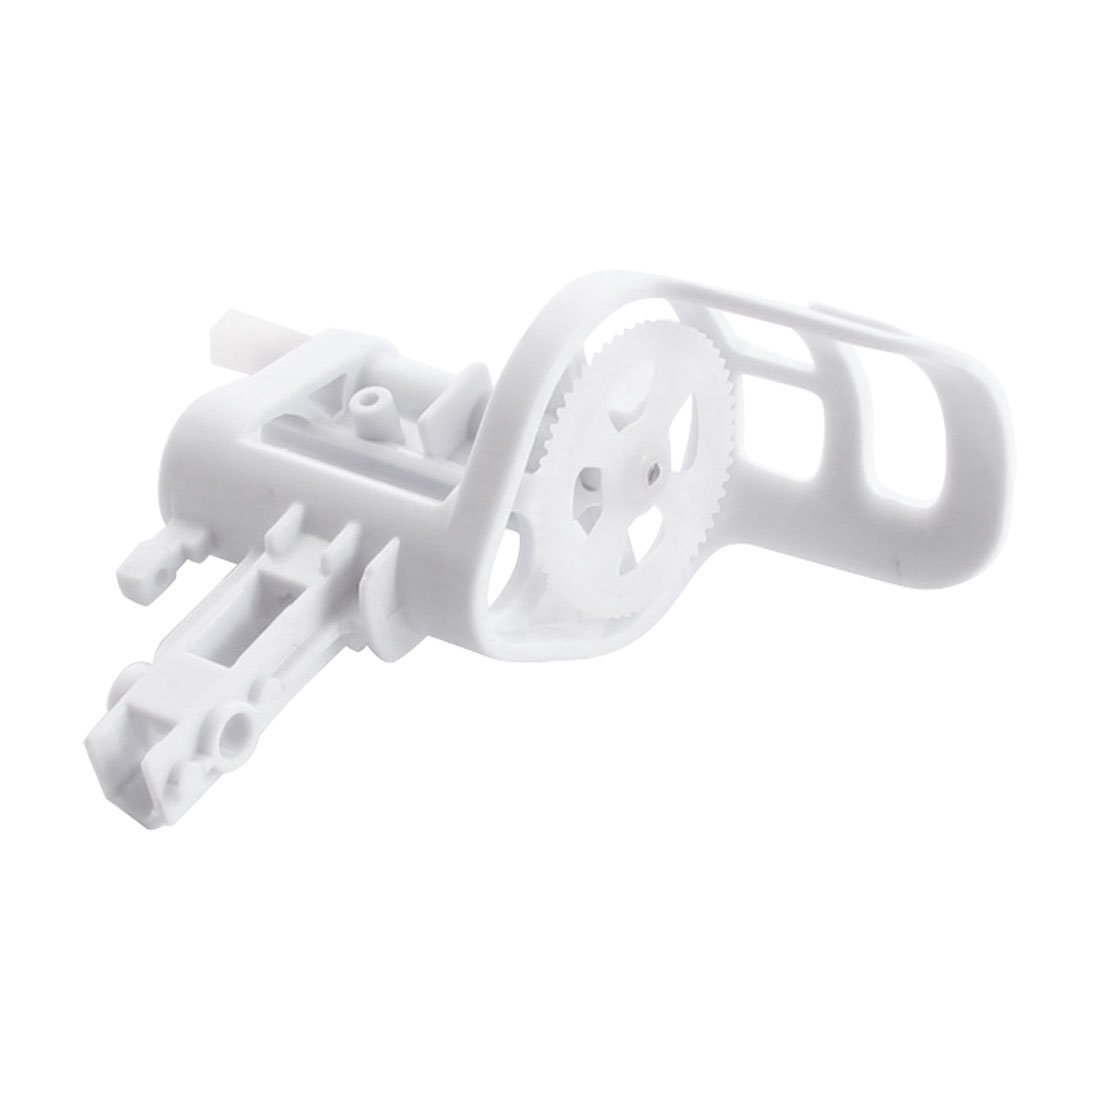 RC Helicopter White Plastic Motor Mount Base Holder Spare Part for Syma X5-05